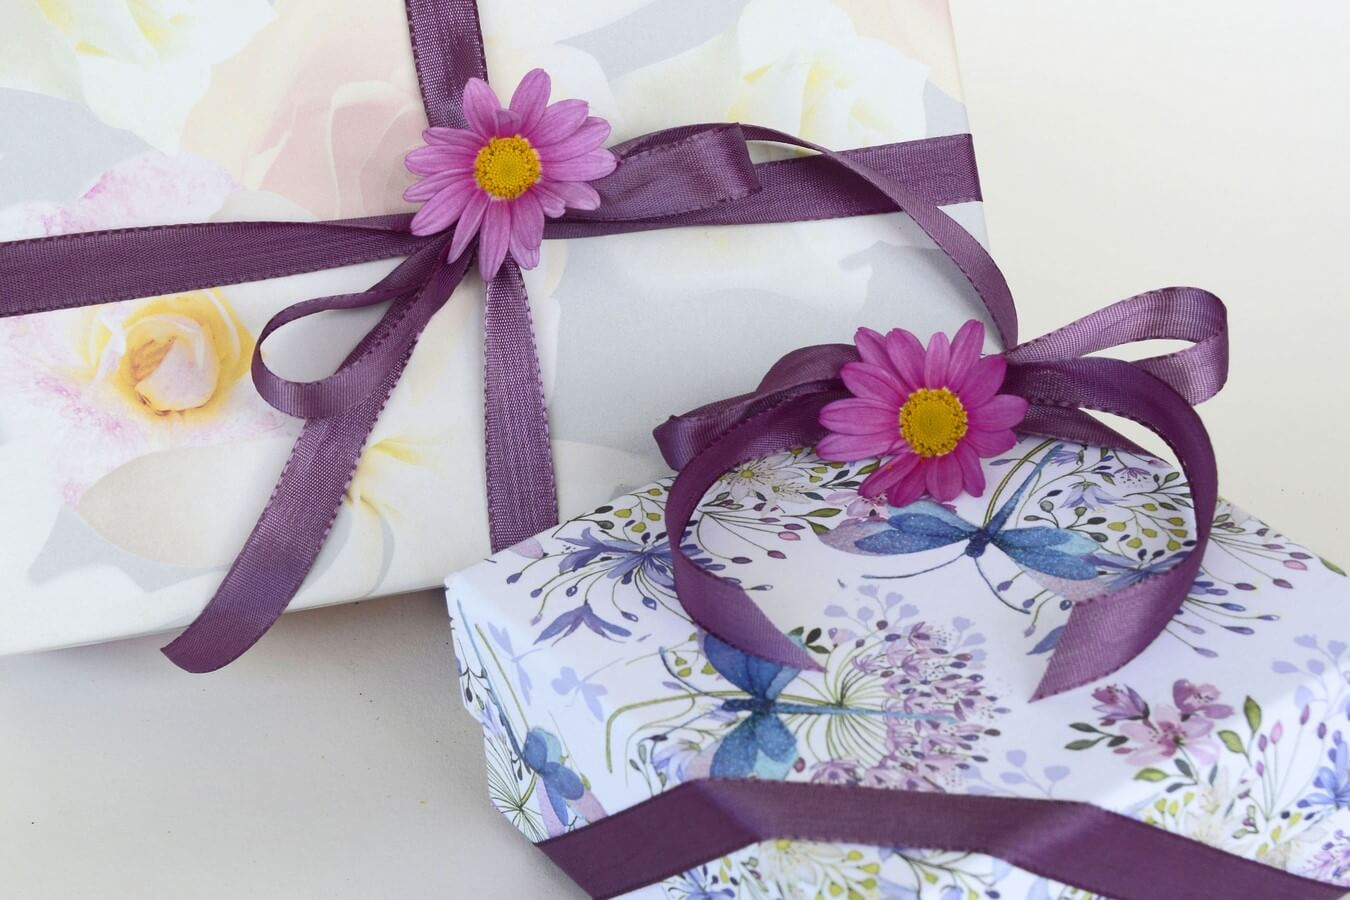 Send Gifts in Israel - Mother's Day Gifts